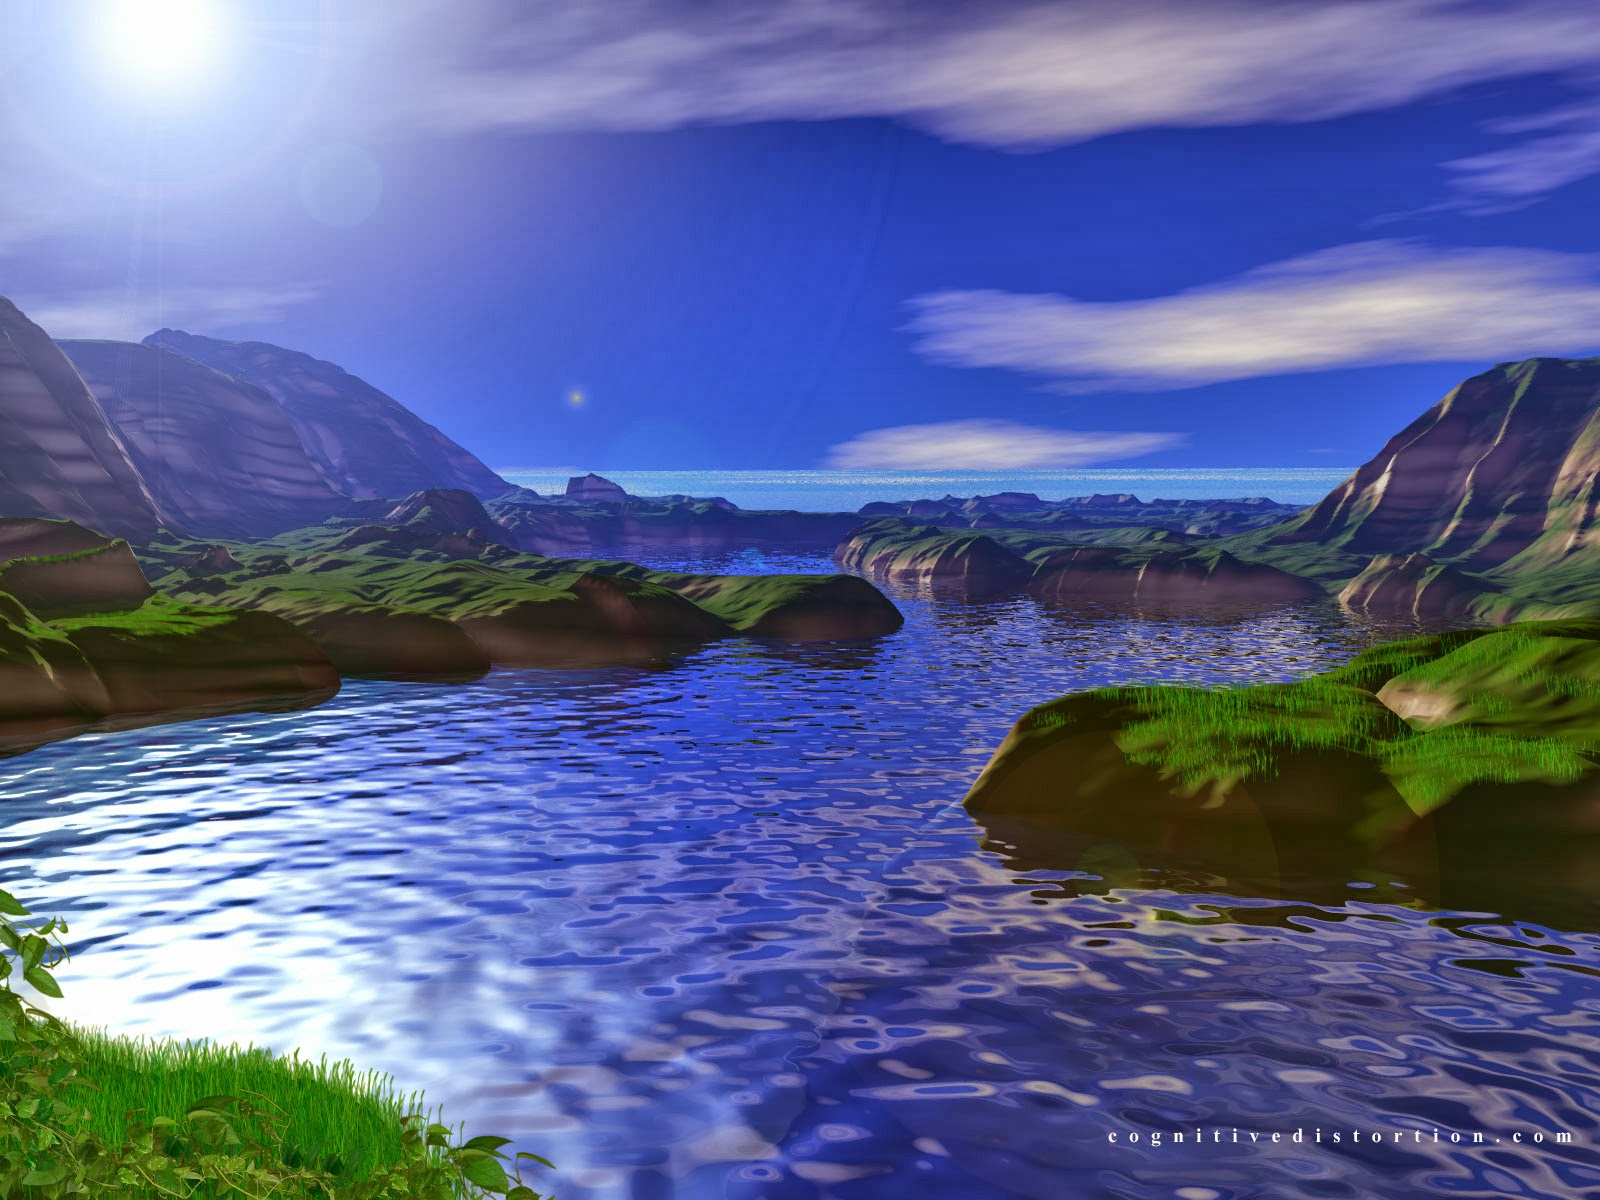 Hd Wallpapers Blog: Cool Nature Background Wallpapers